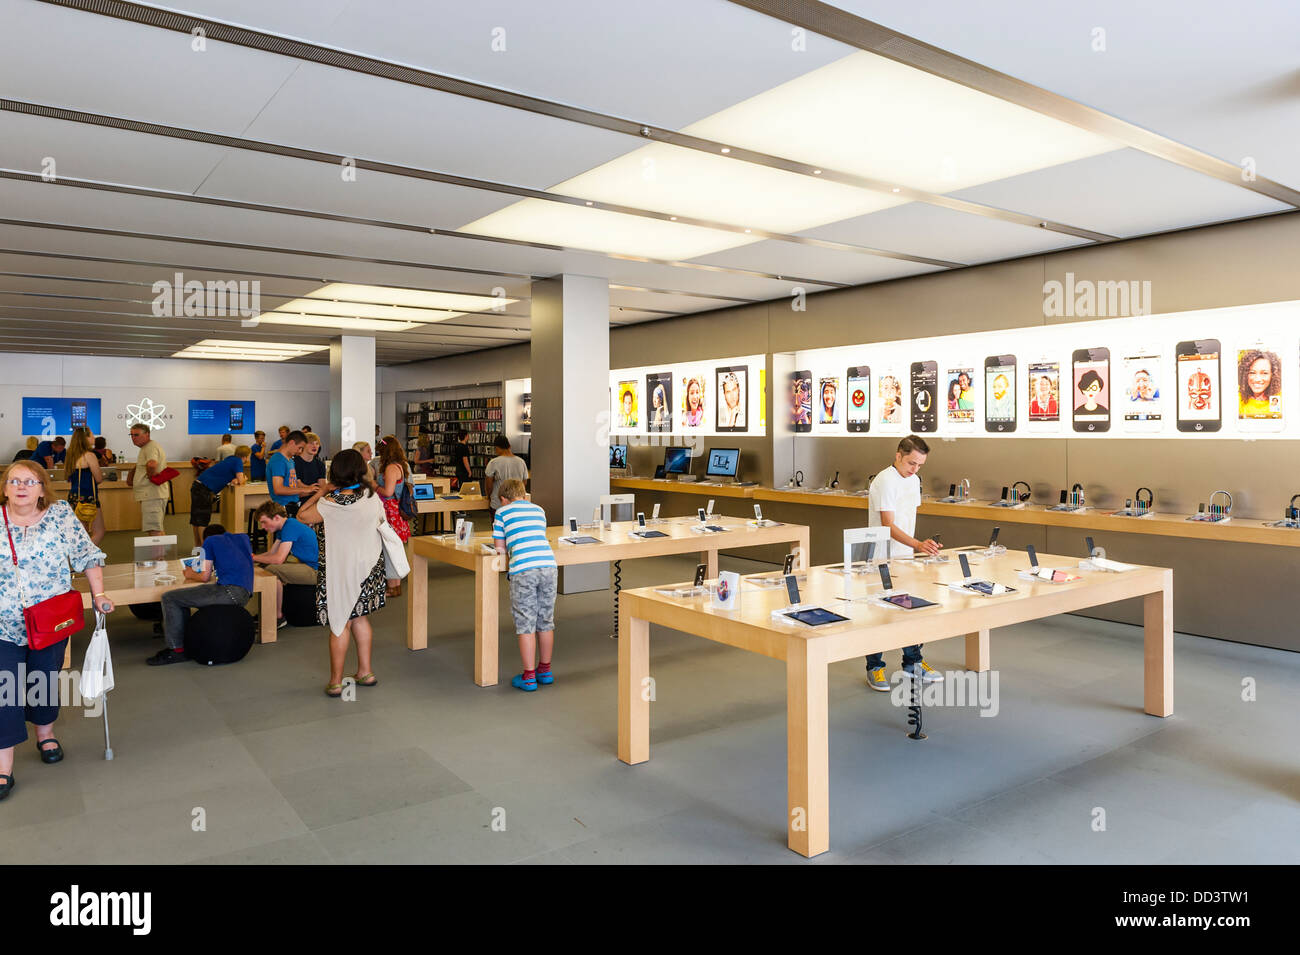 Apple Store Uk Stock Photos & Apple Store Uk Stock Images - Alamy